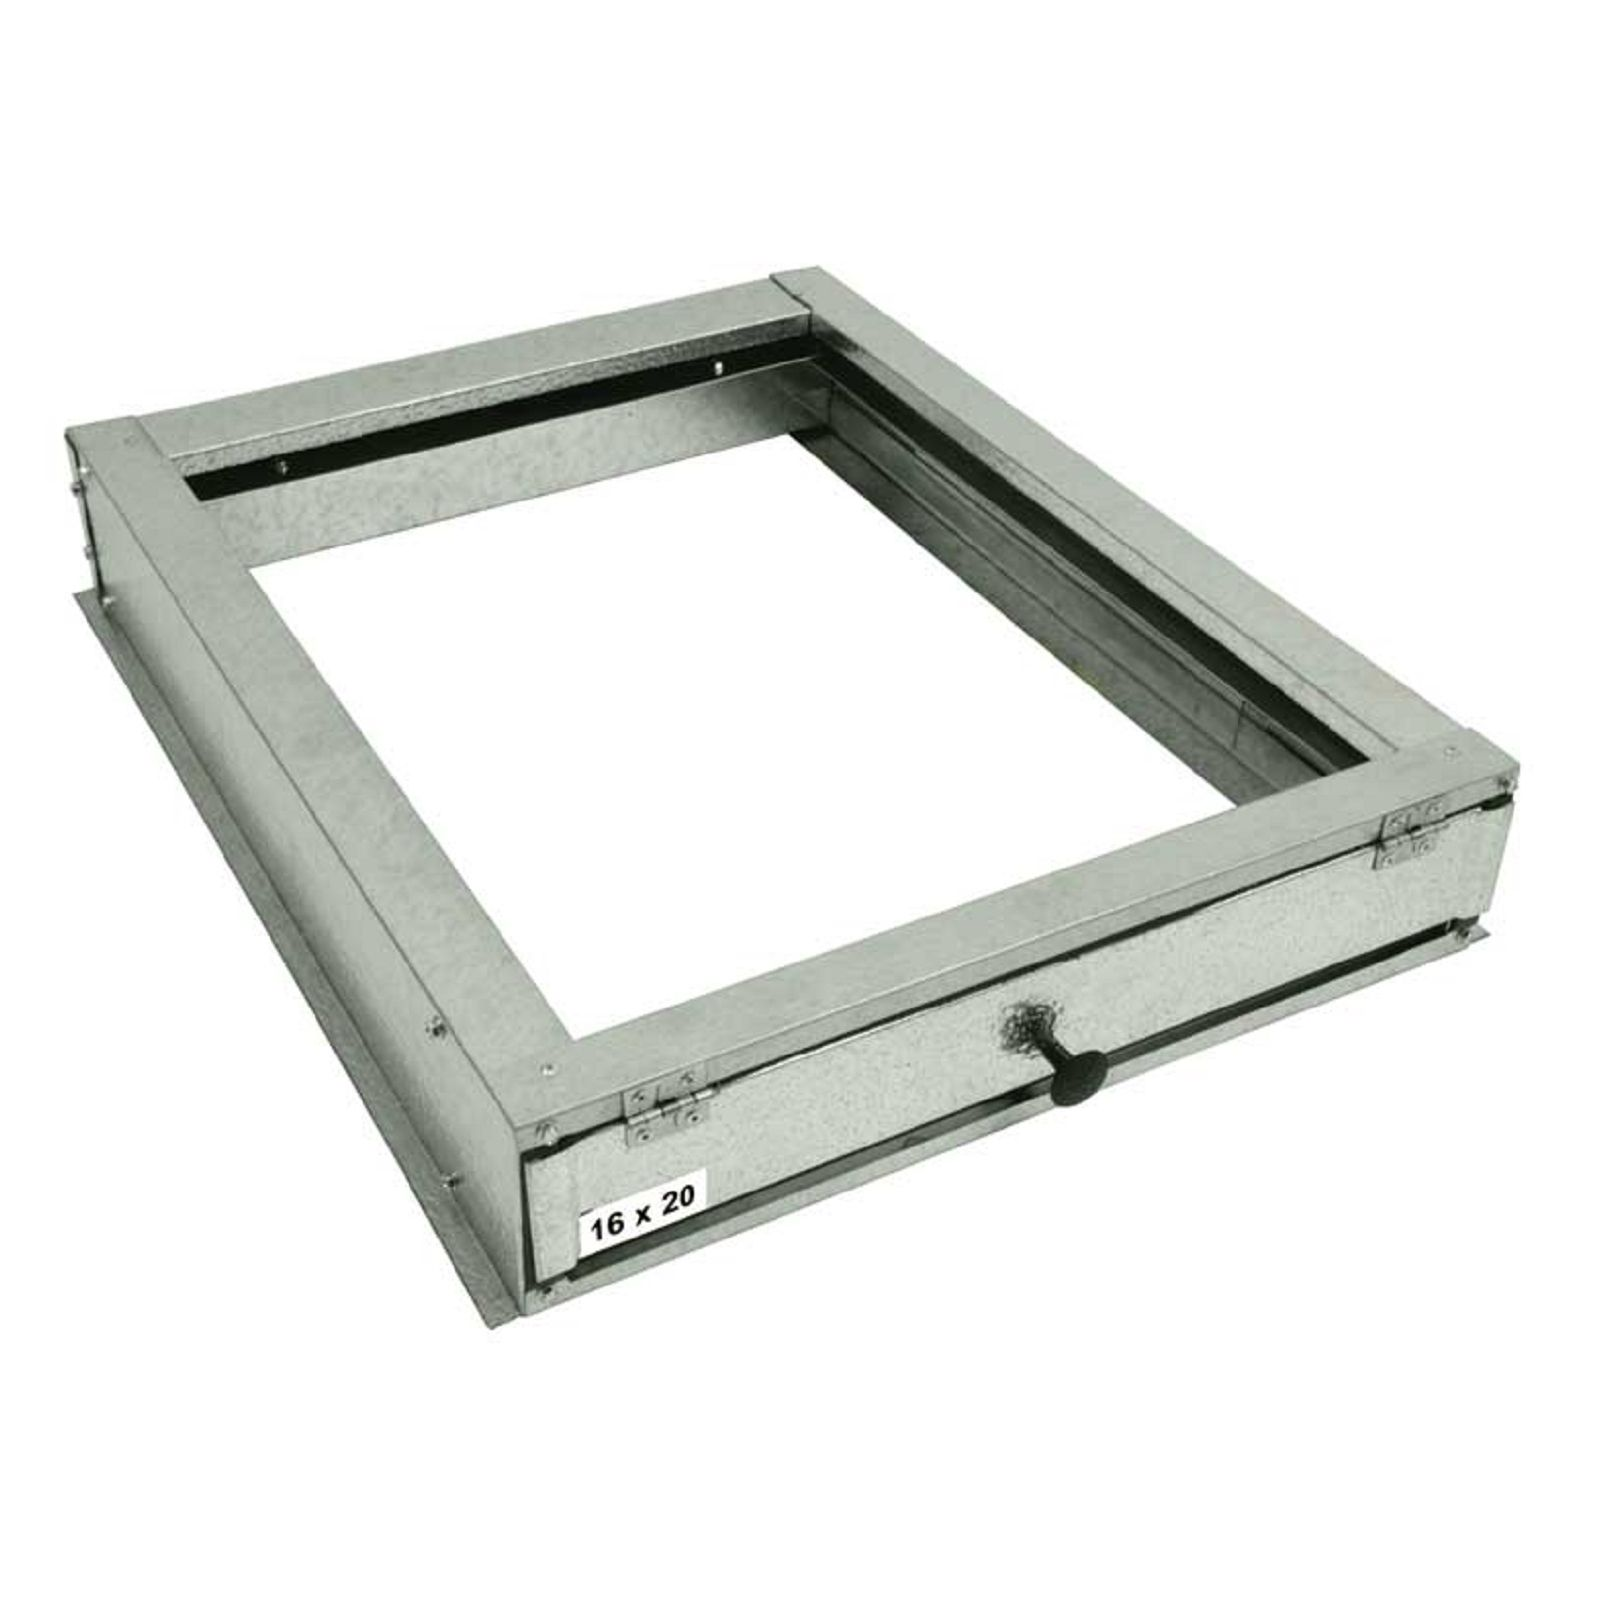 "McDaniel ACE2025-3N - Accommodator/Filter Housing for Electric Furnaces, 20"" X 25"" X 1"" Or 2"" Filter Door Narrow"